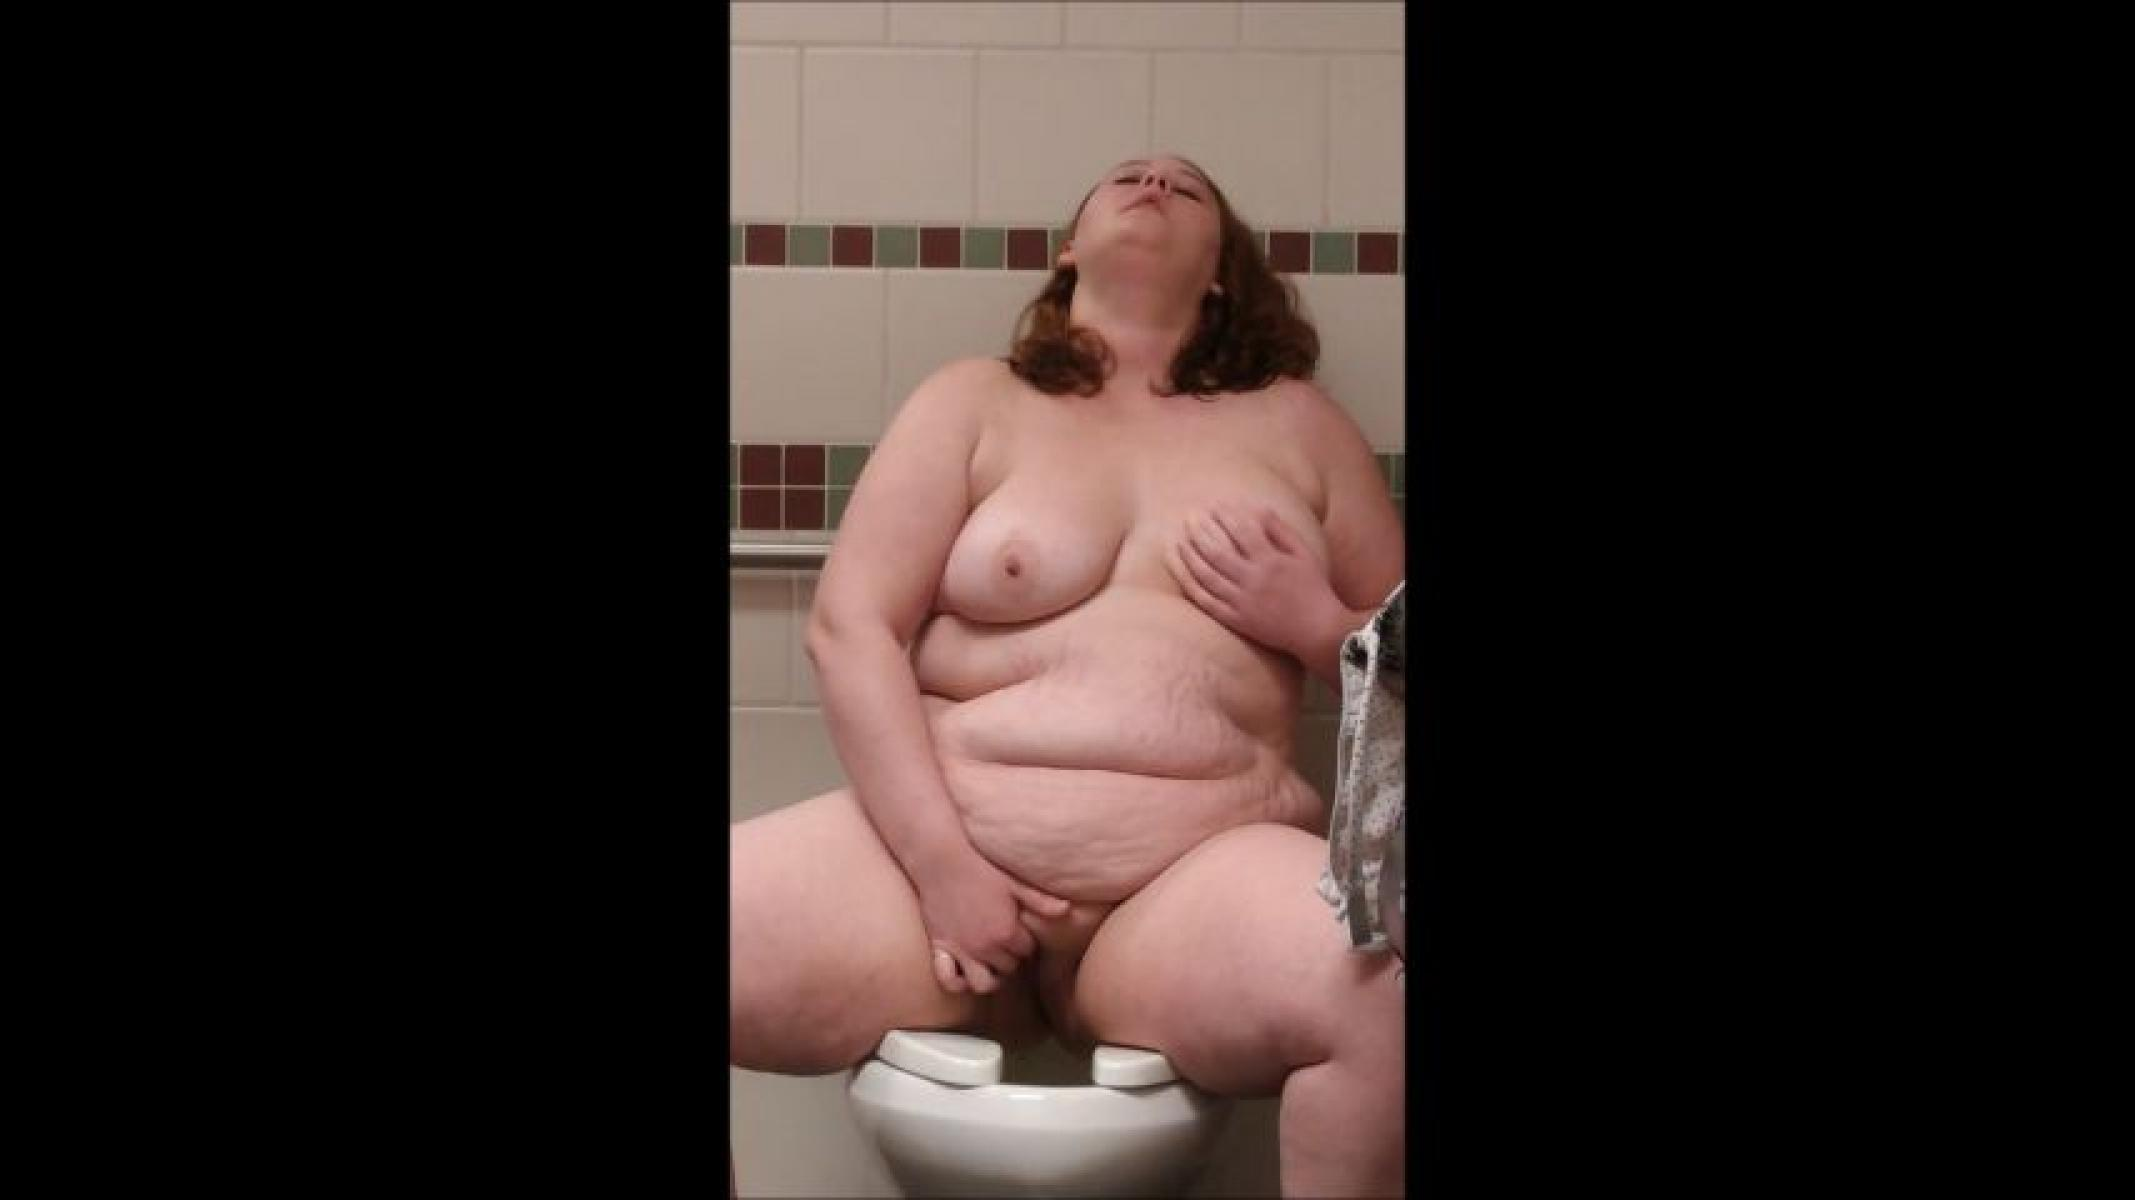 Bbw with grool in her pussy as she takes a pee